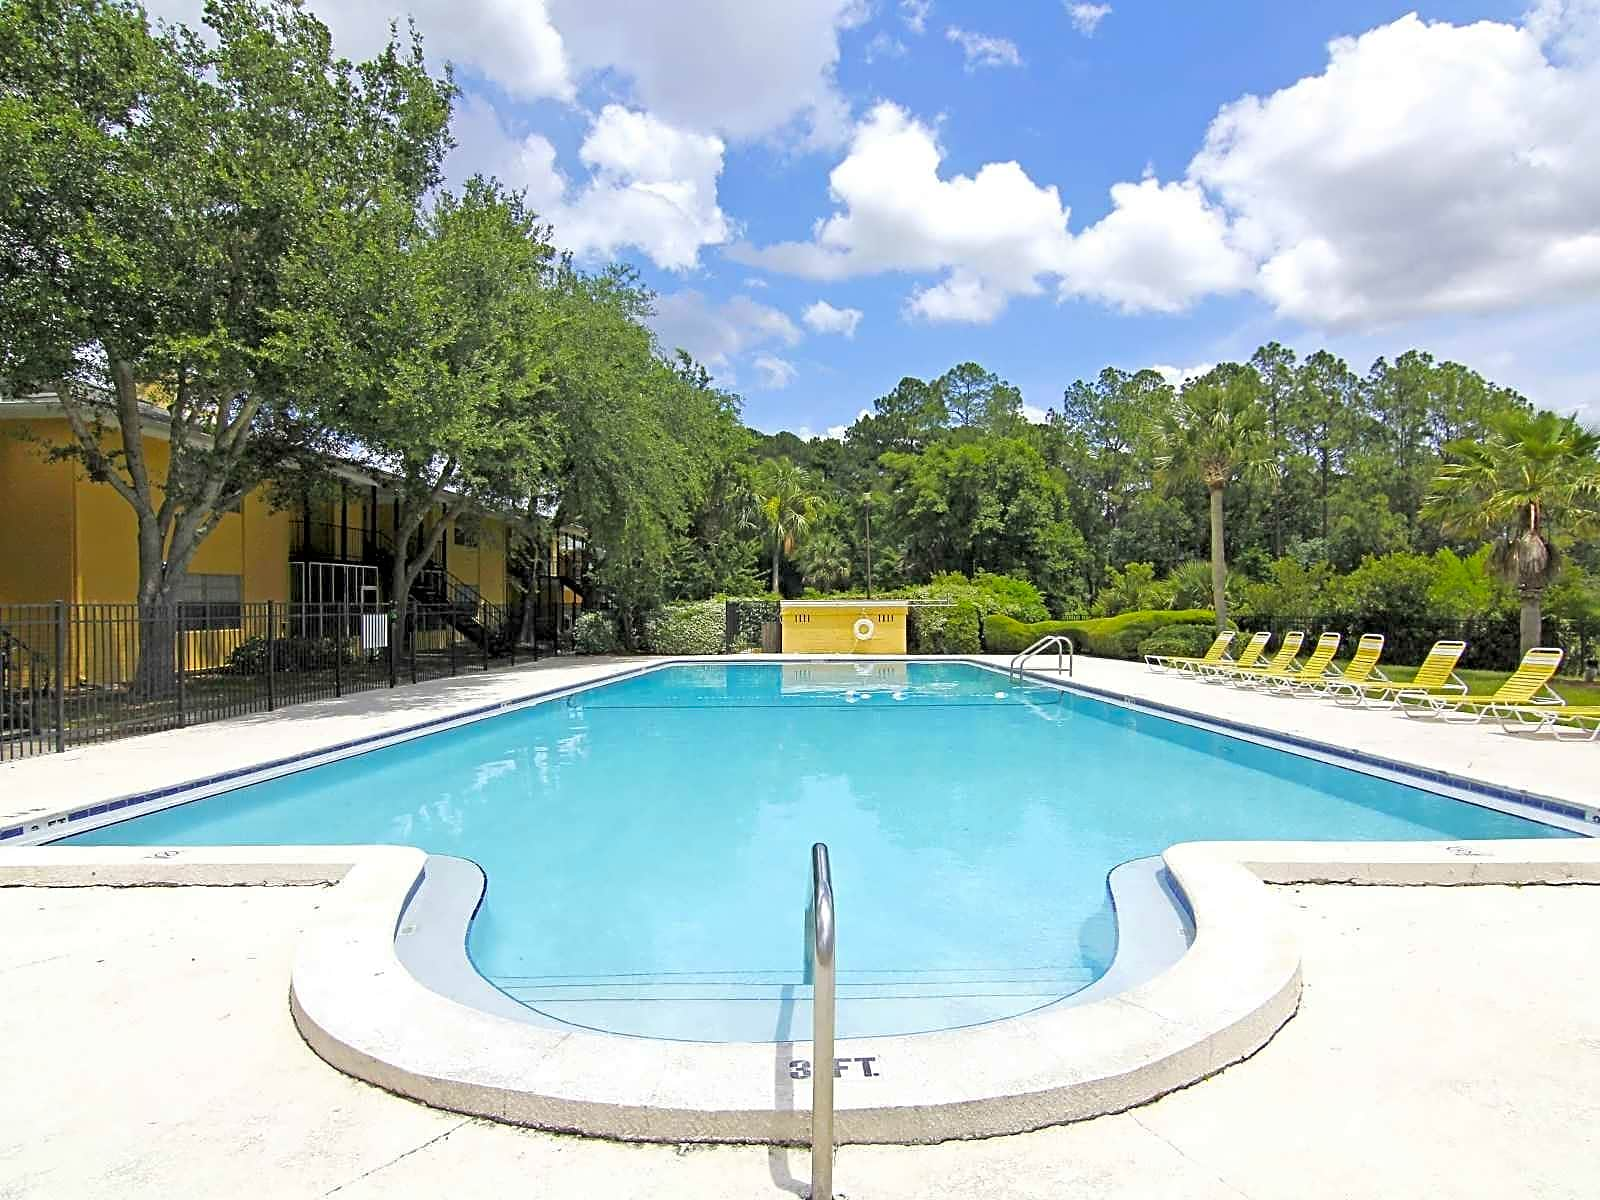 Photo: Jacksonville Apartment for Rent - $775.00 / month; 3 Bd & 2 Ba